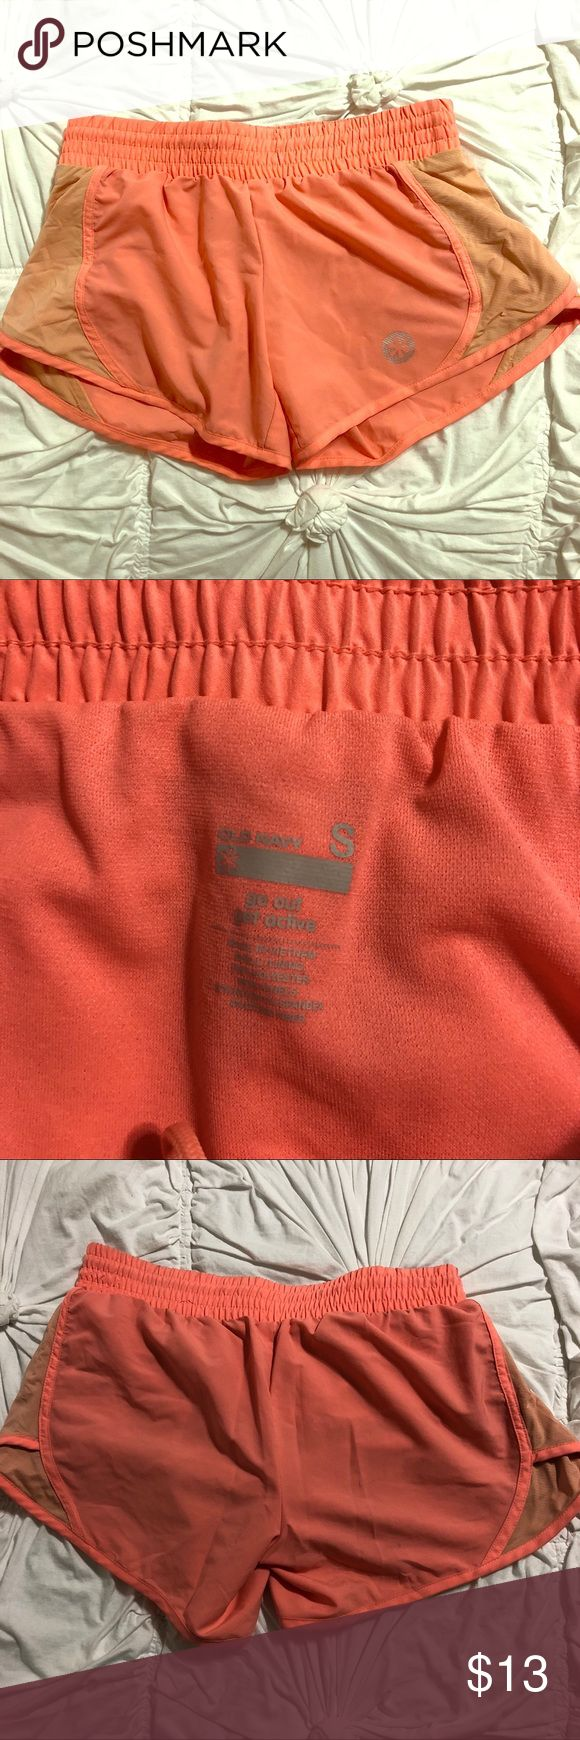 Old Navy Women's Workout Short Great condition. Bright coral color. Drawstring. Lightweight material. Very comfortable. Old Navy Shorts